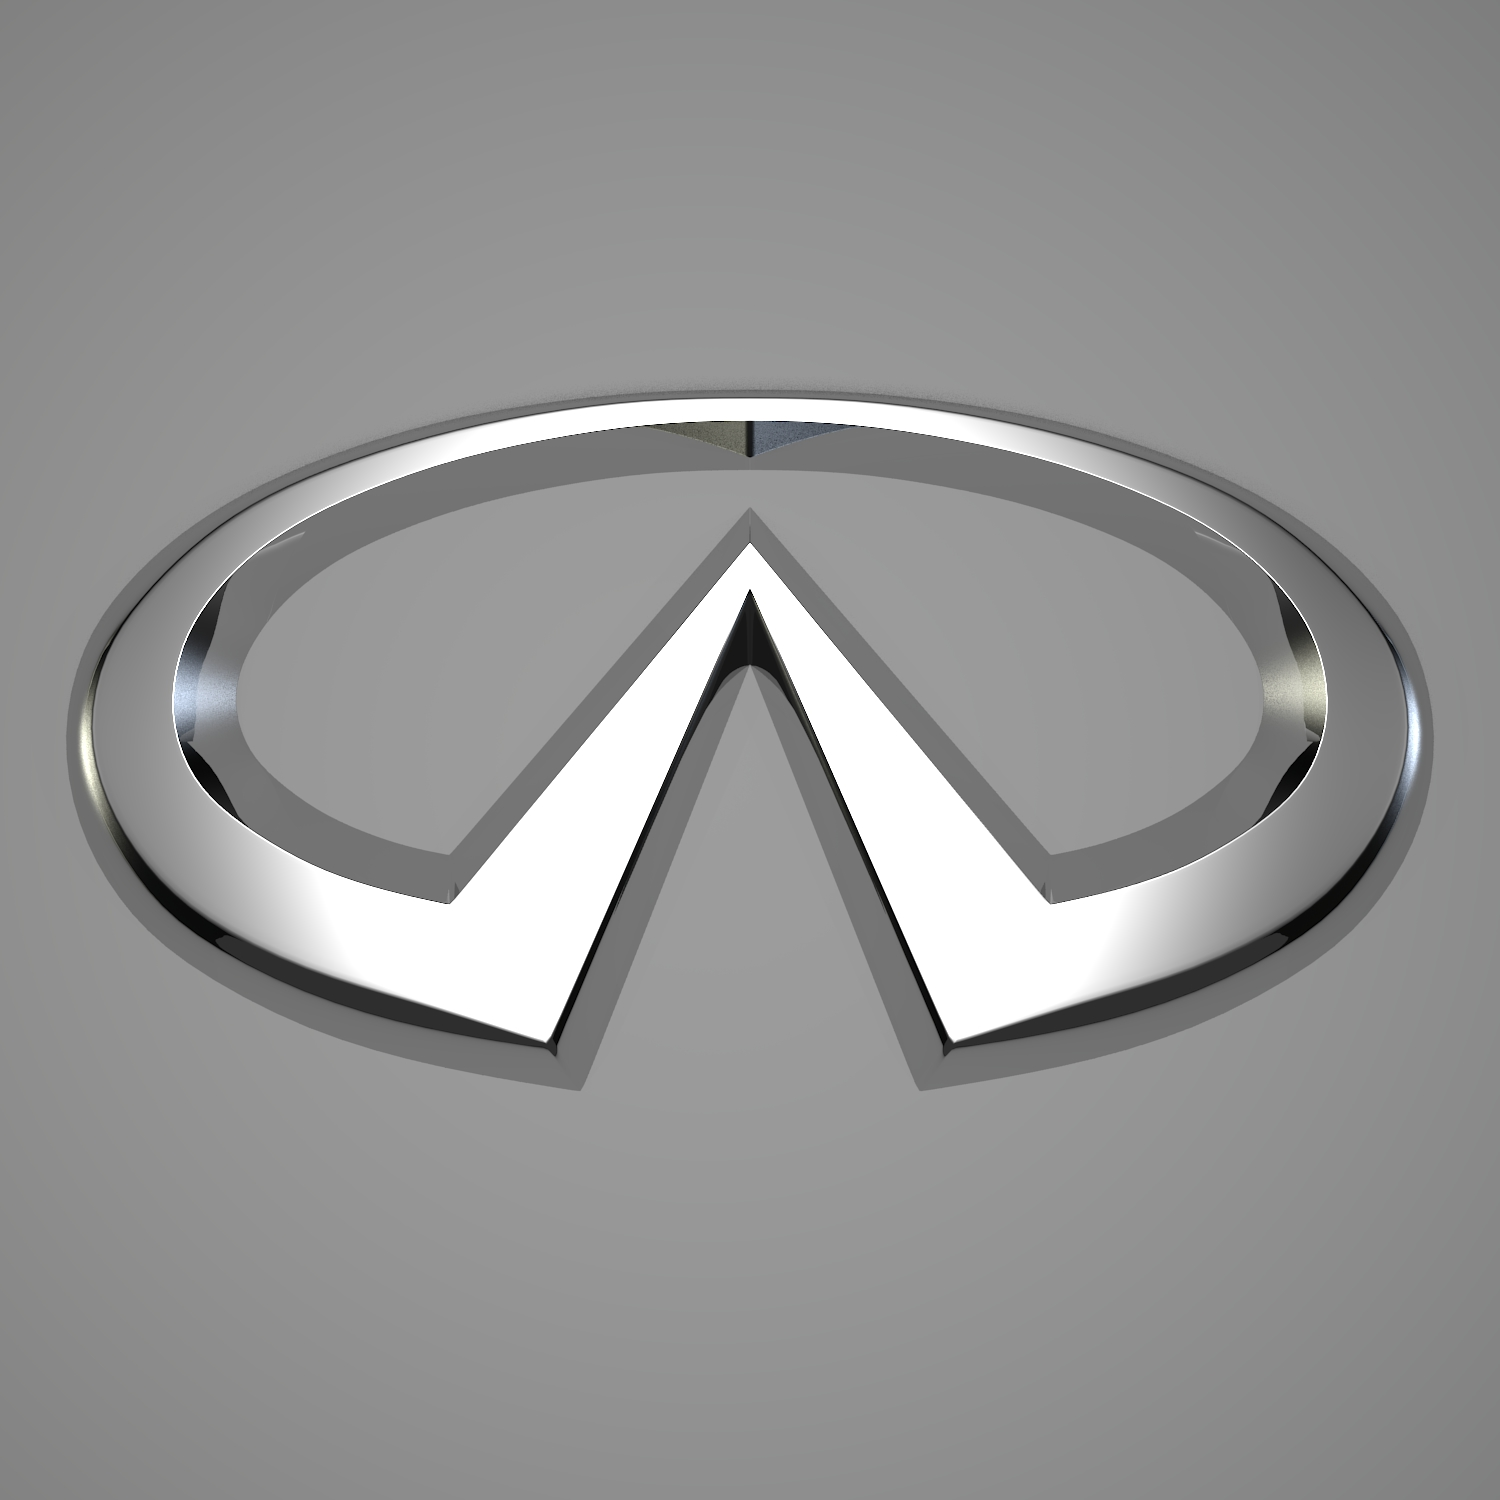 Infiniti Logo Infiniti Car Symbol Meaning And History Car Brand -  signs of cars with names